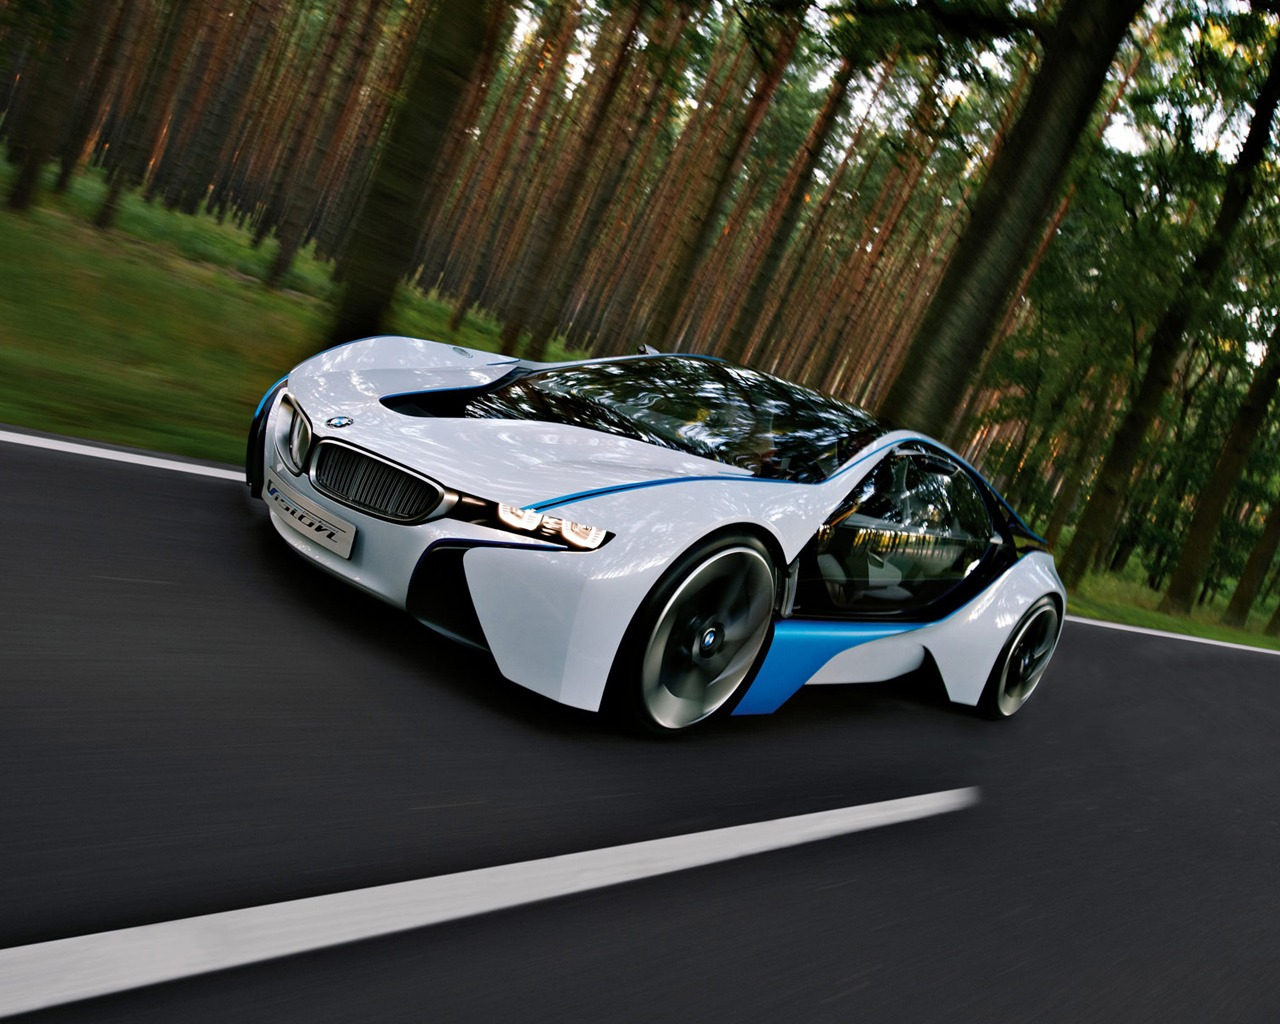 download wallpaper bmw cars - photo #4